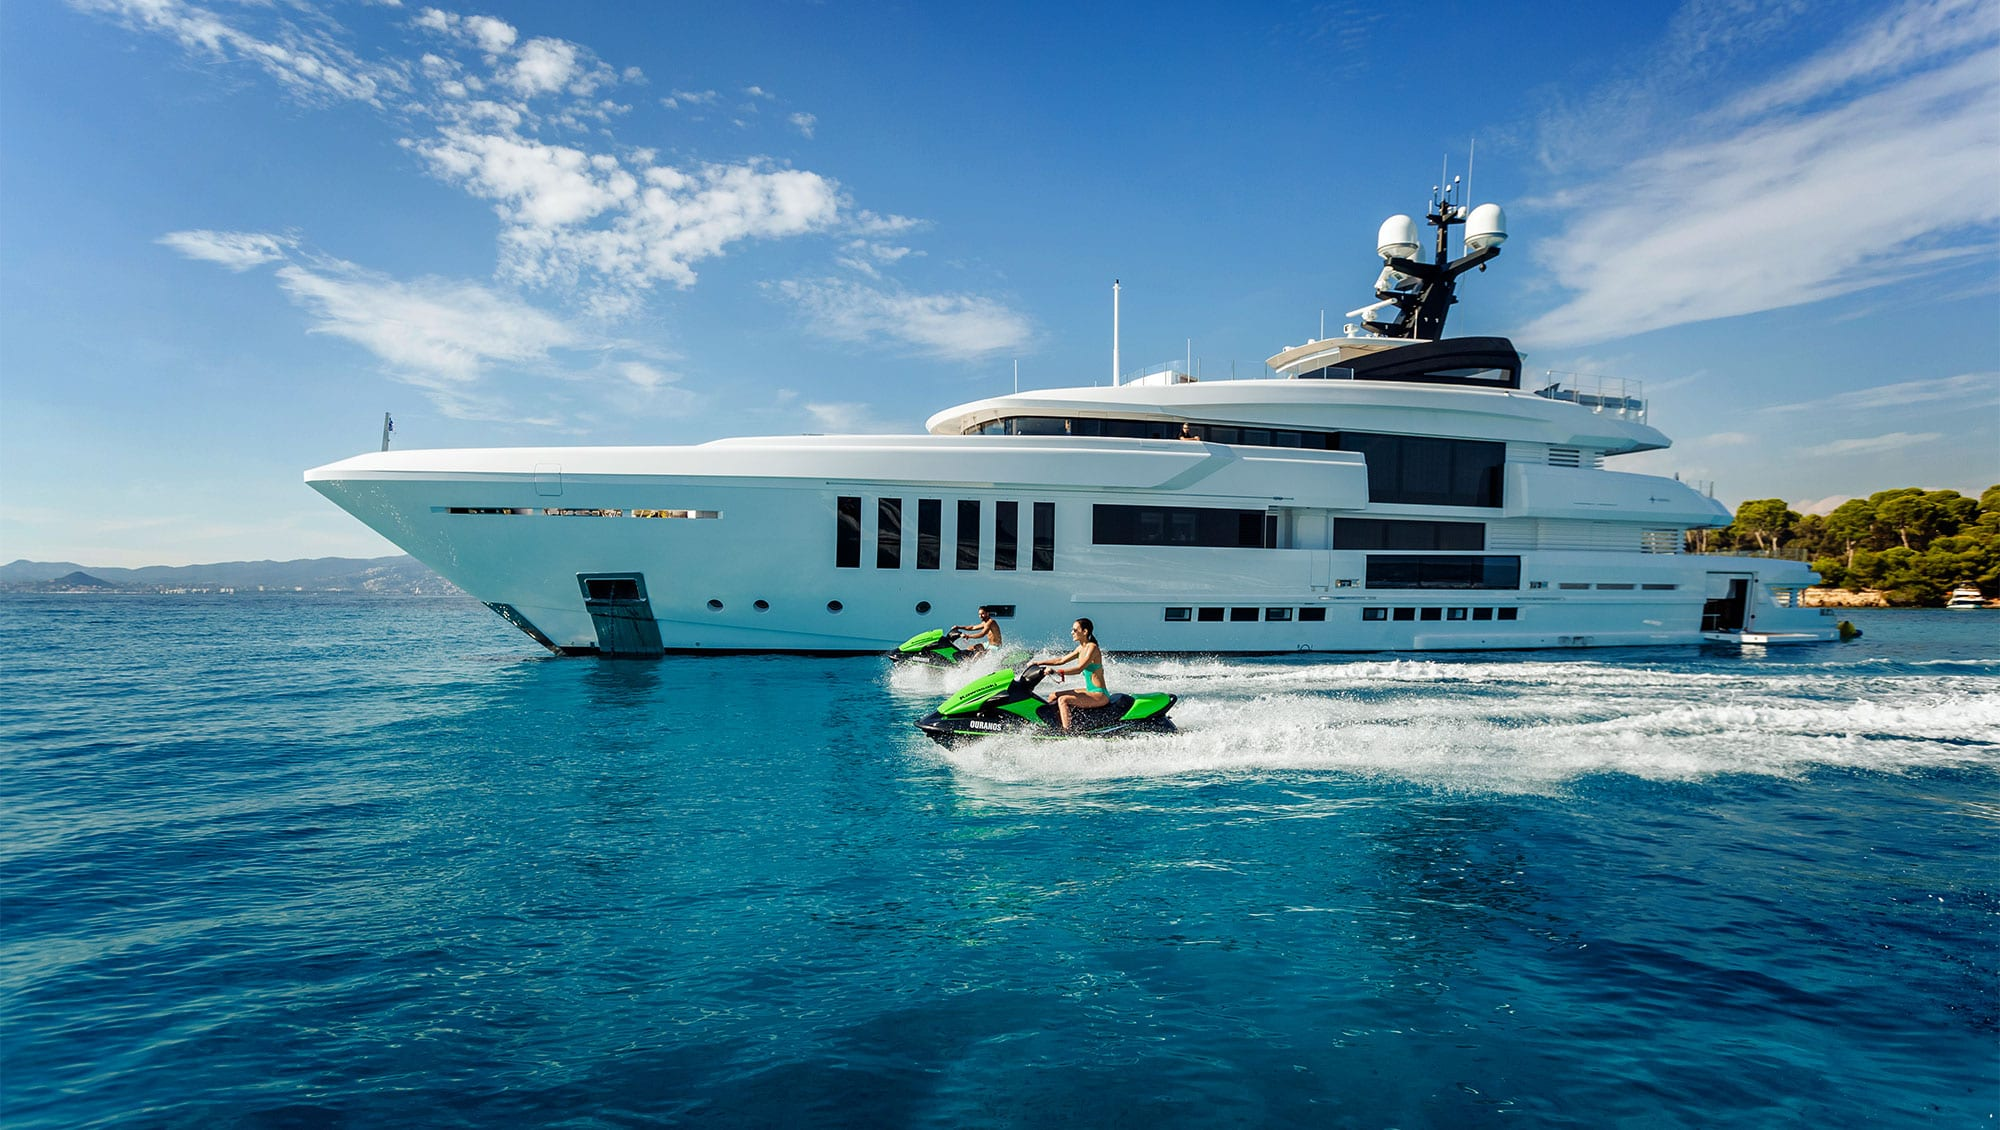 Rent The Yacht. Own The Feeling.